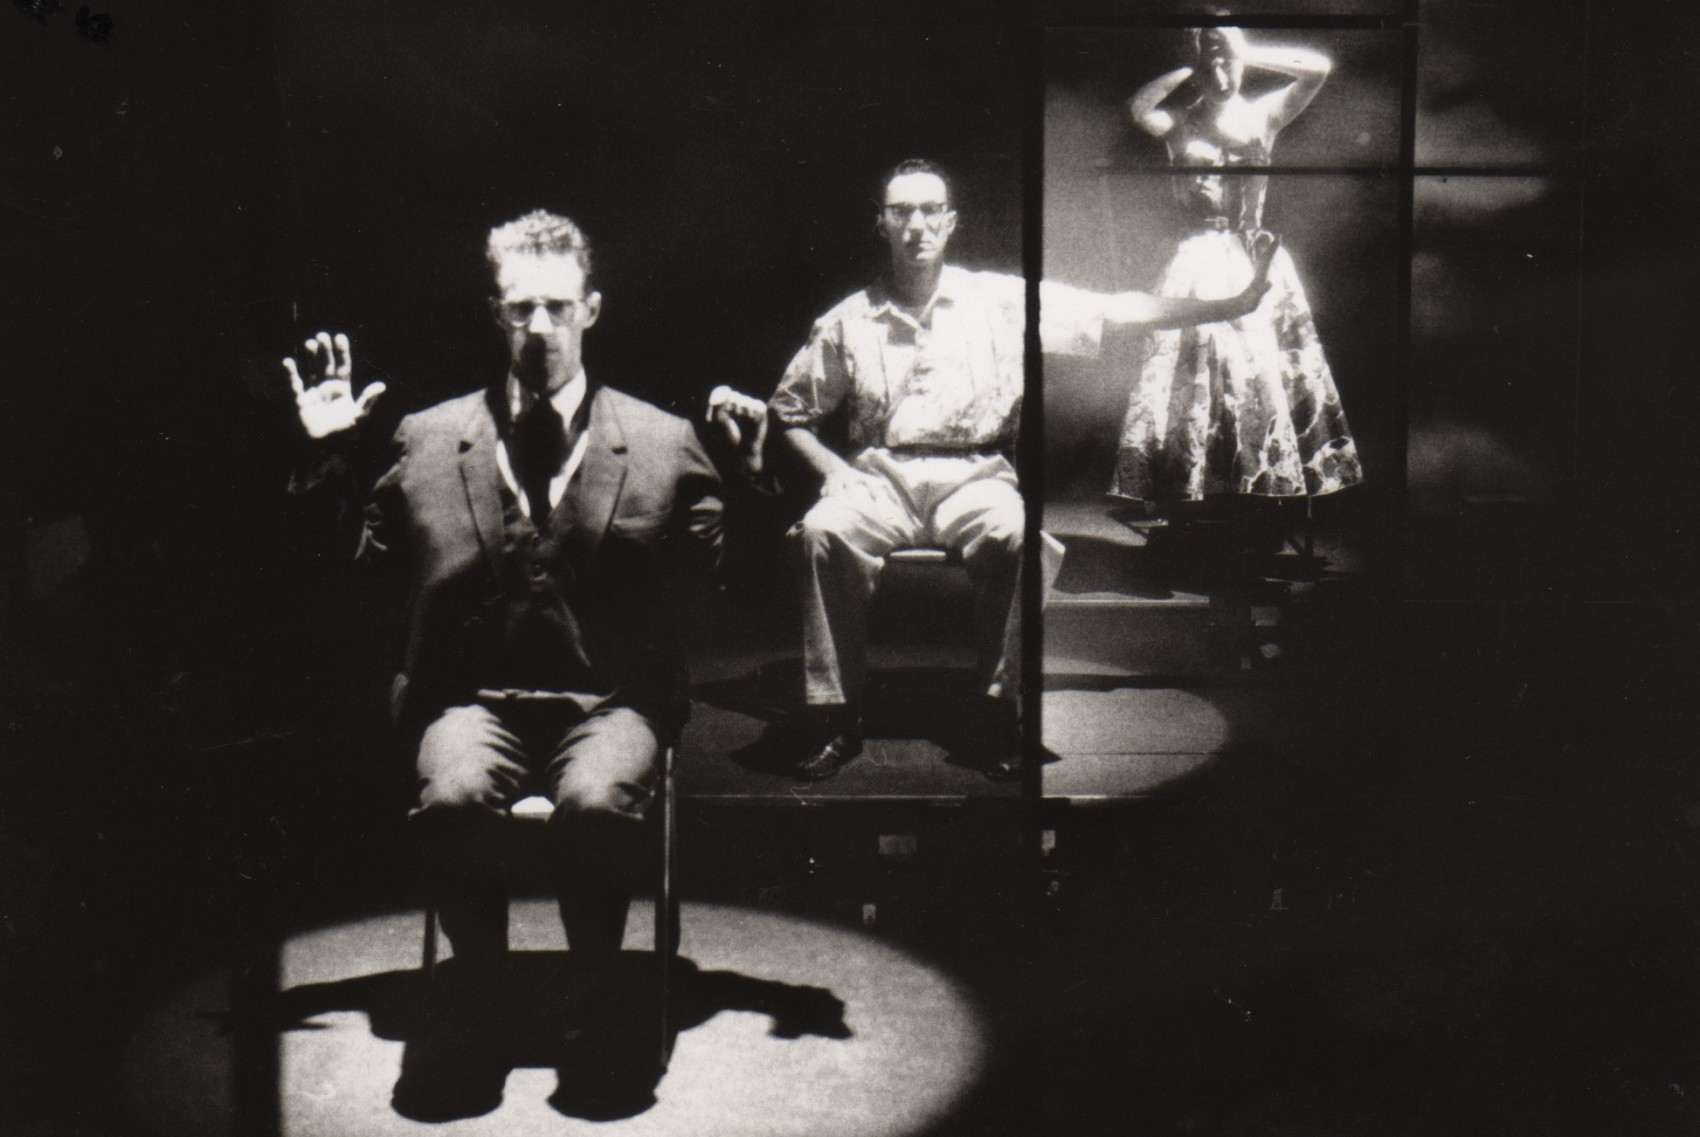 Production image of two men seated in spotlights and one woman standing, arms raised